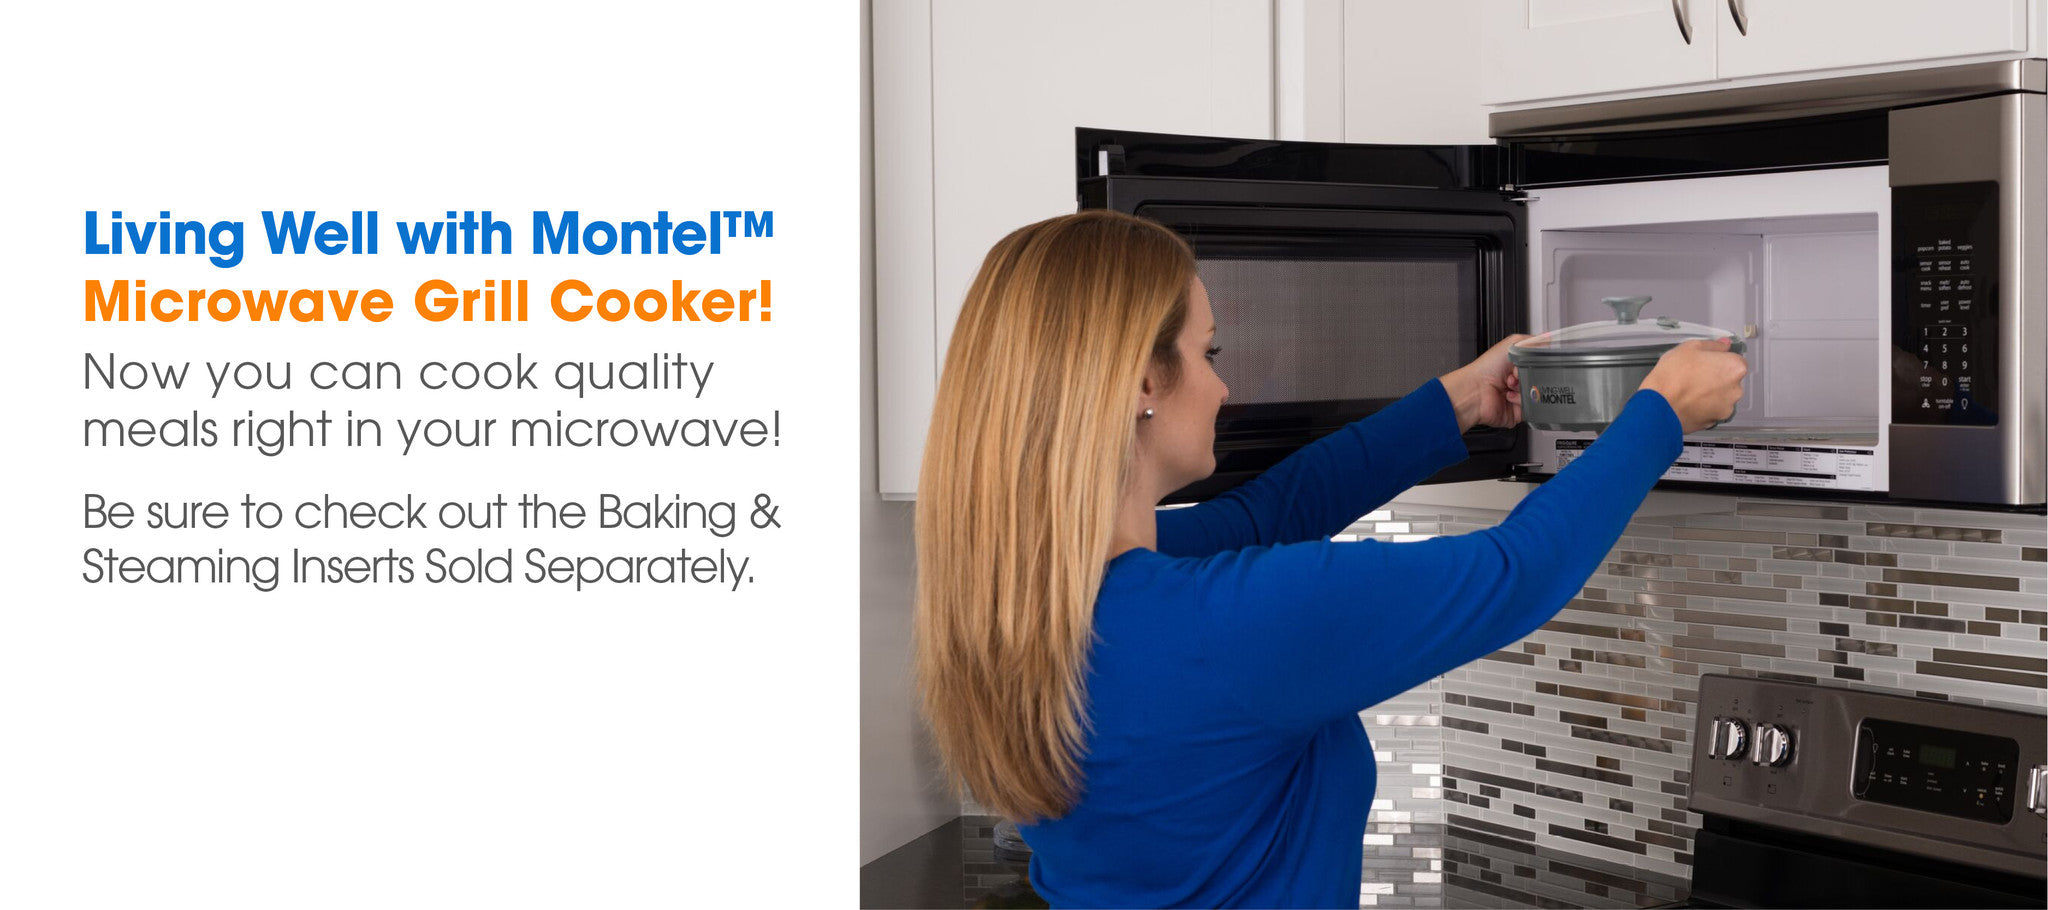 Living Well with Montel Microwave Grill Cooker